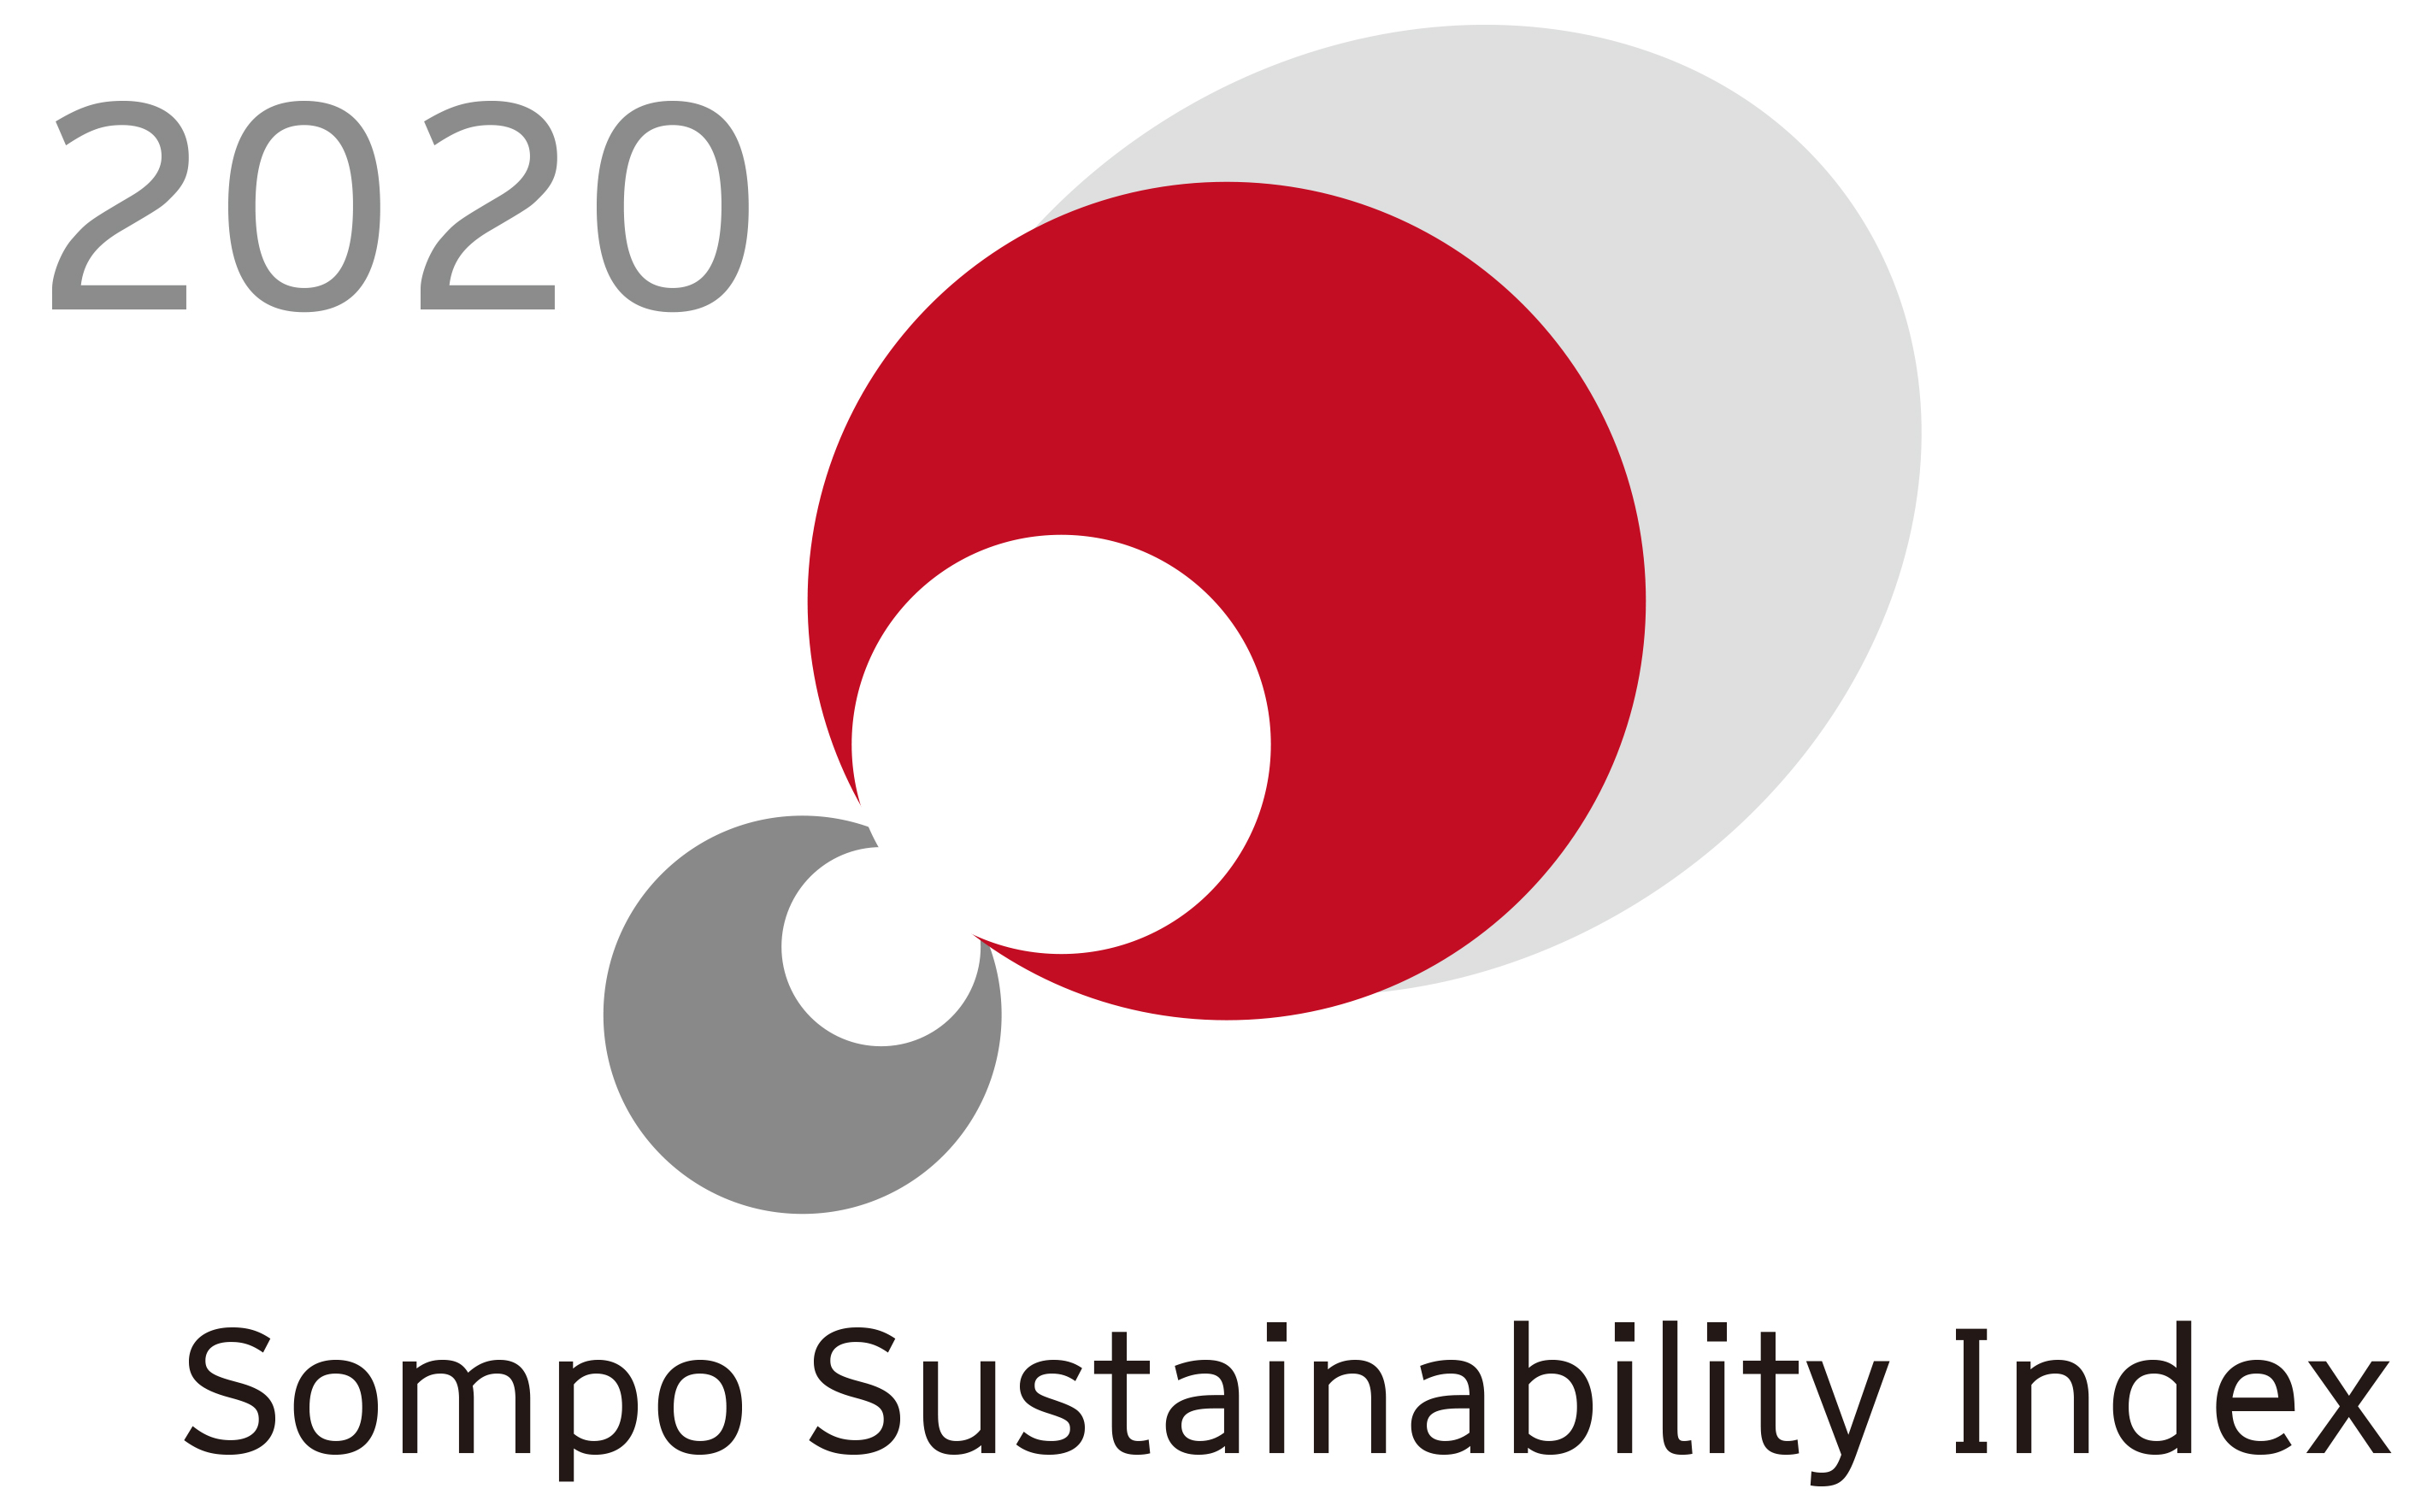 2020 Sompo Sustainability Index